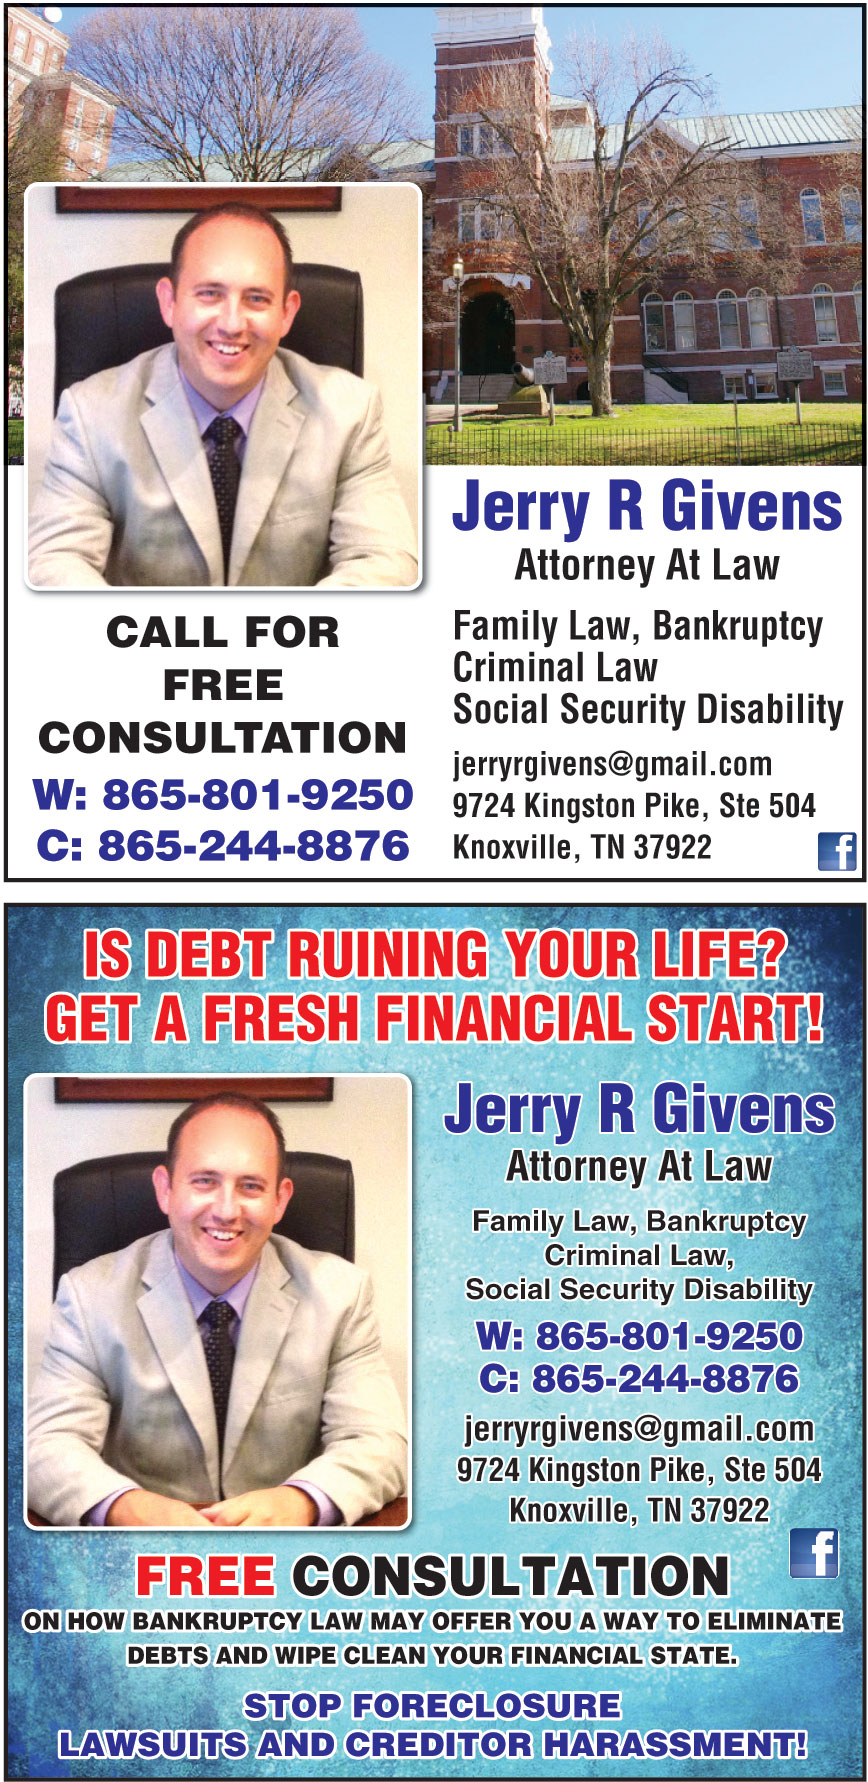 JERRY GIVENS ATTORNEY